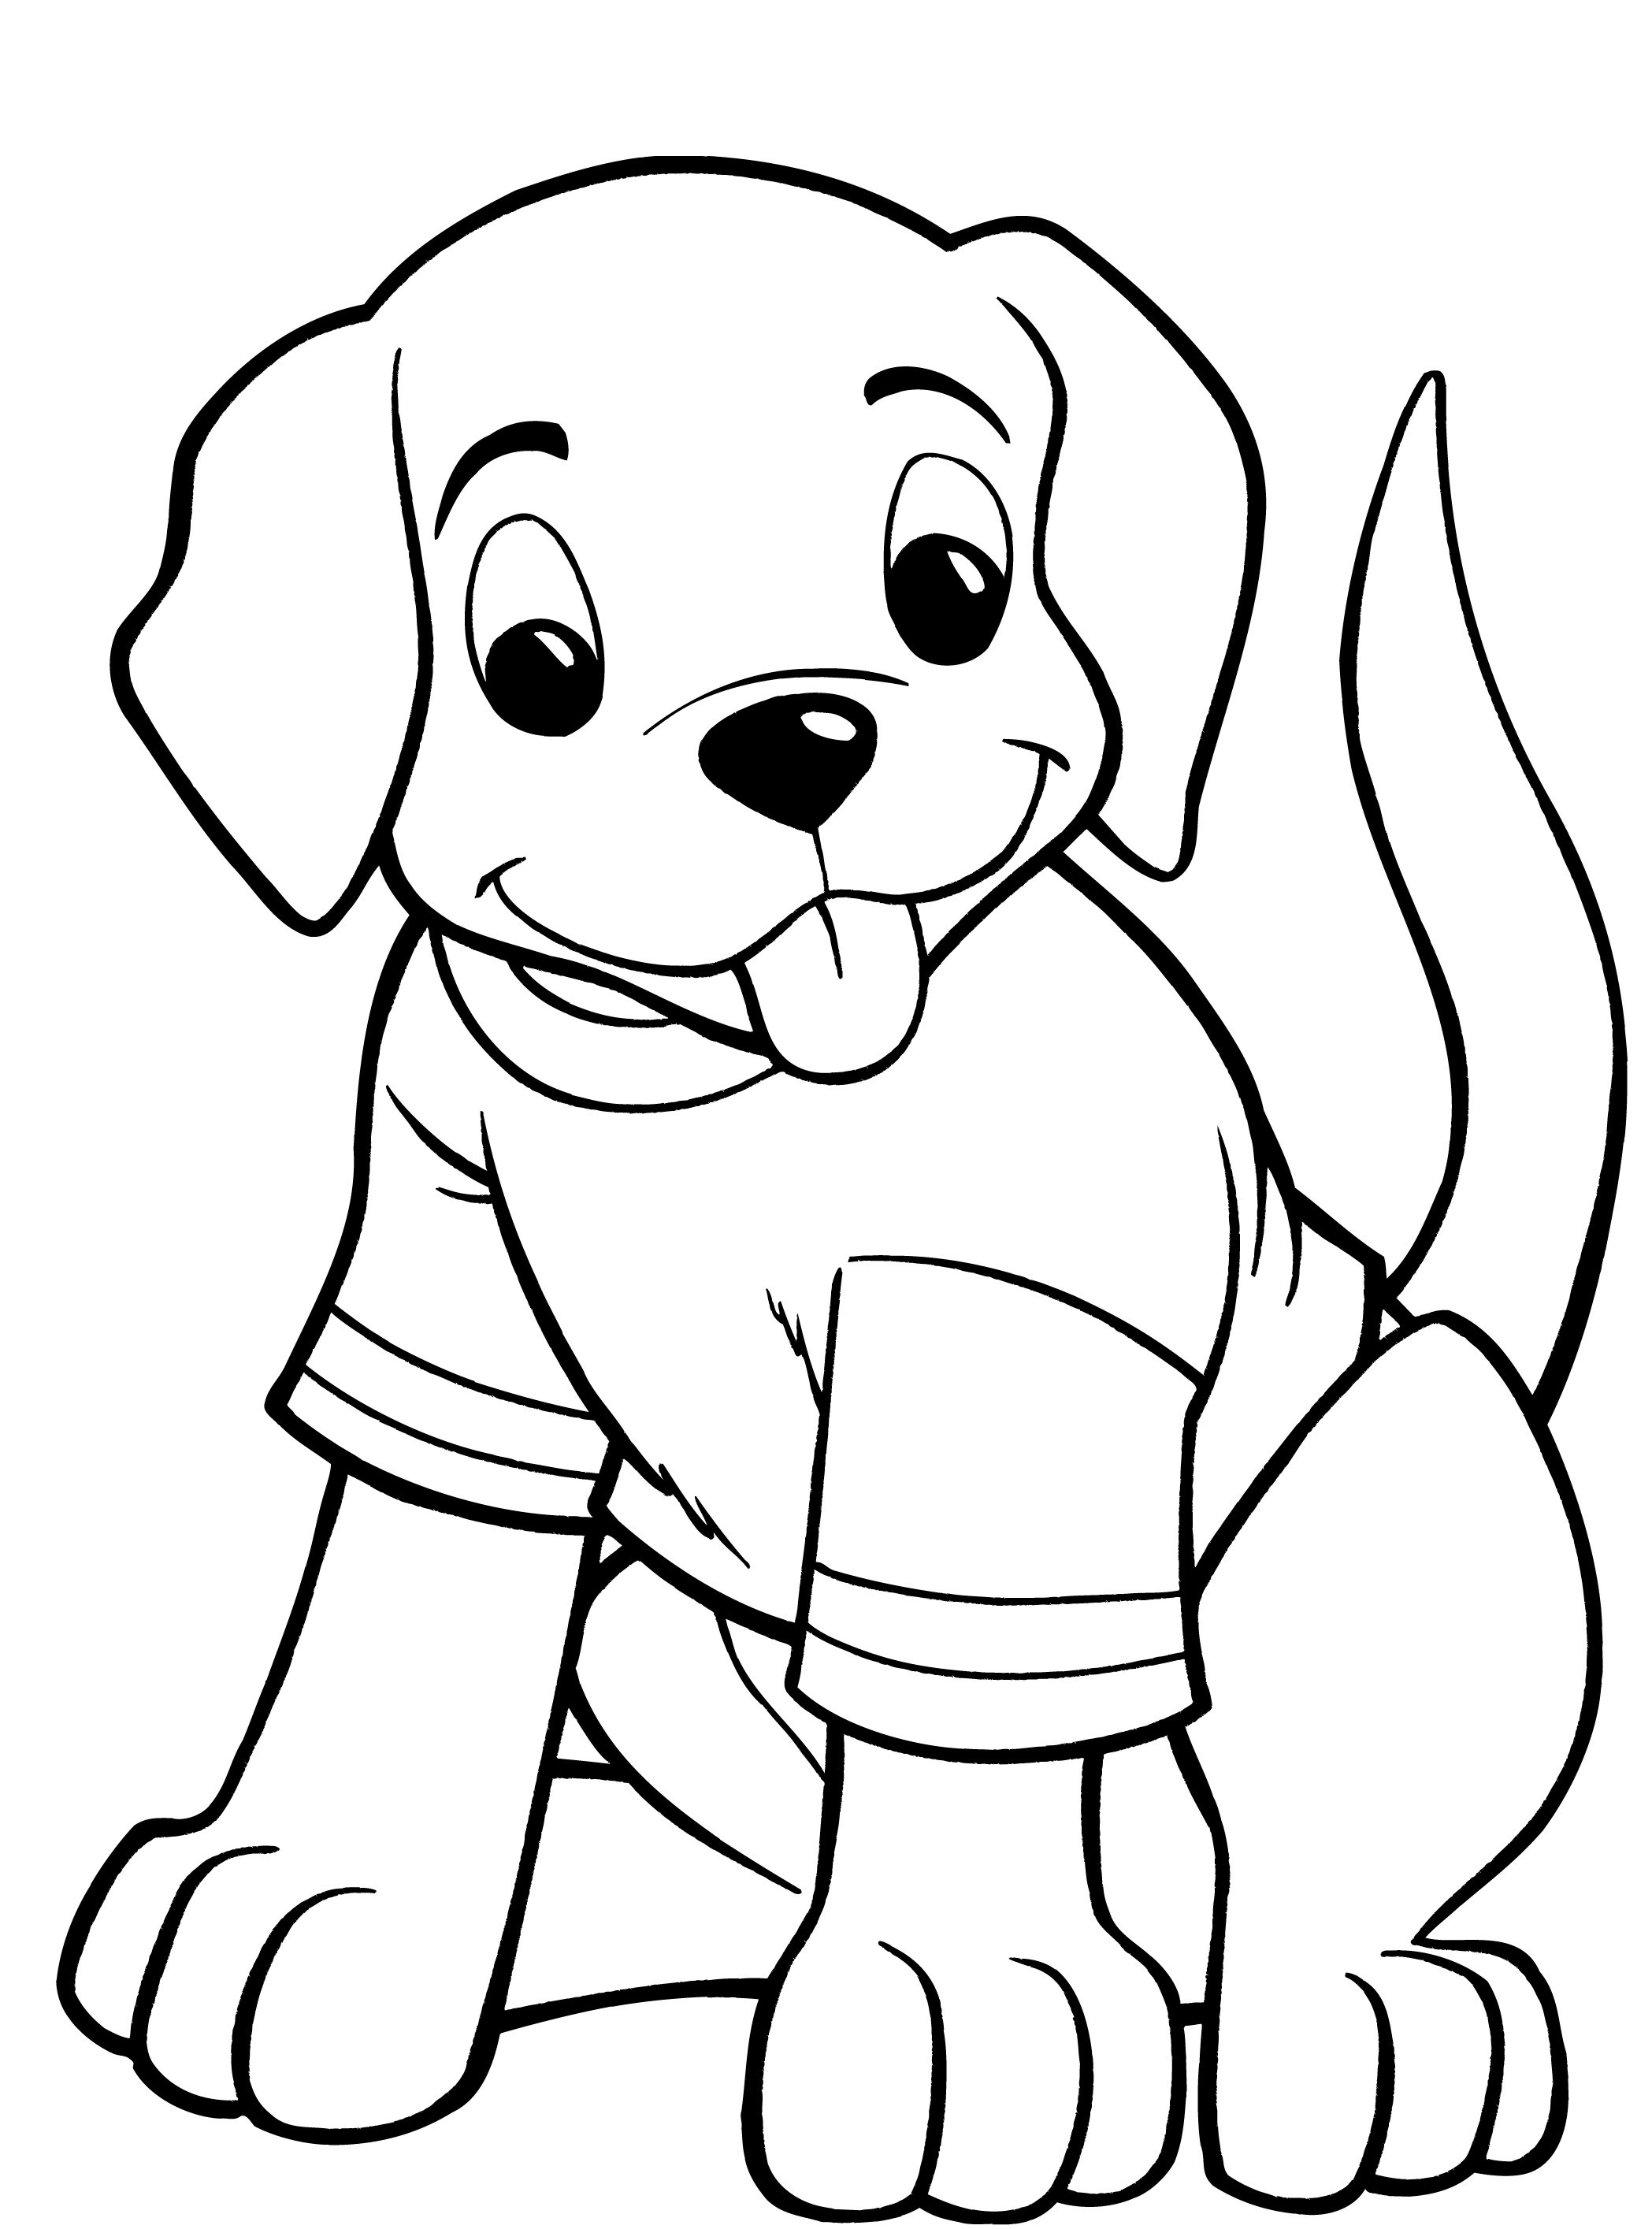 coloring page puppy dog coloring pages for kids preschool and kindergarten page puppy coloring